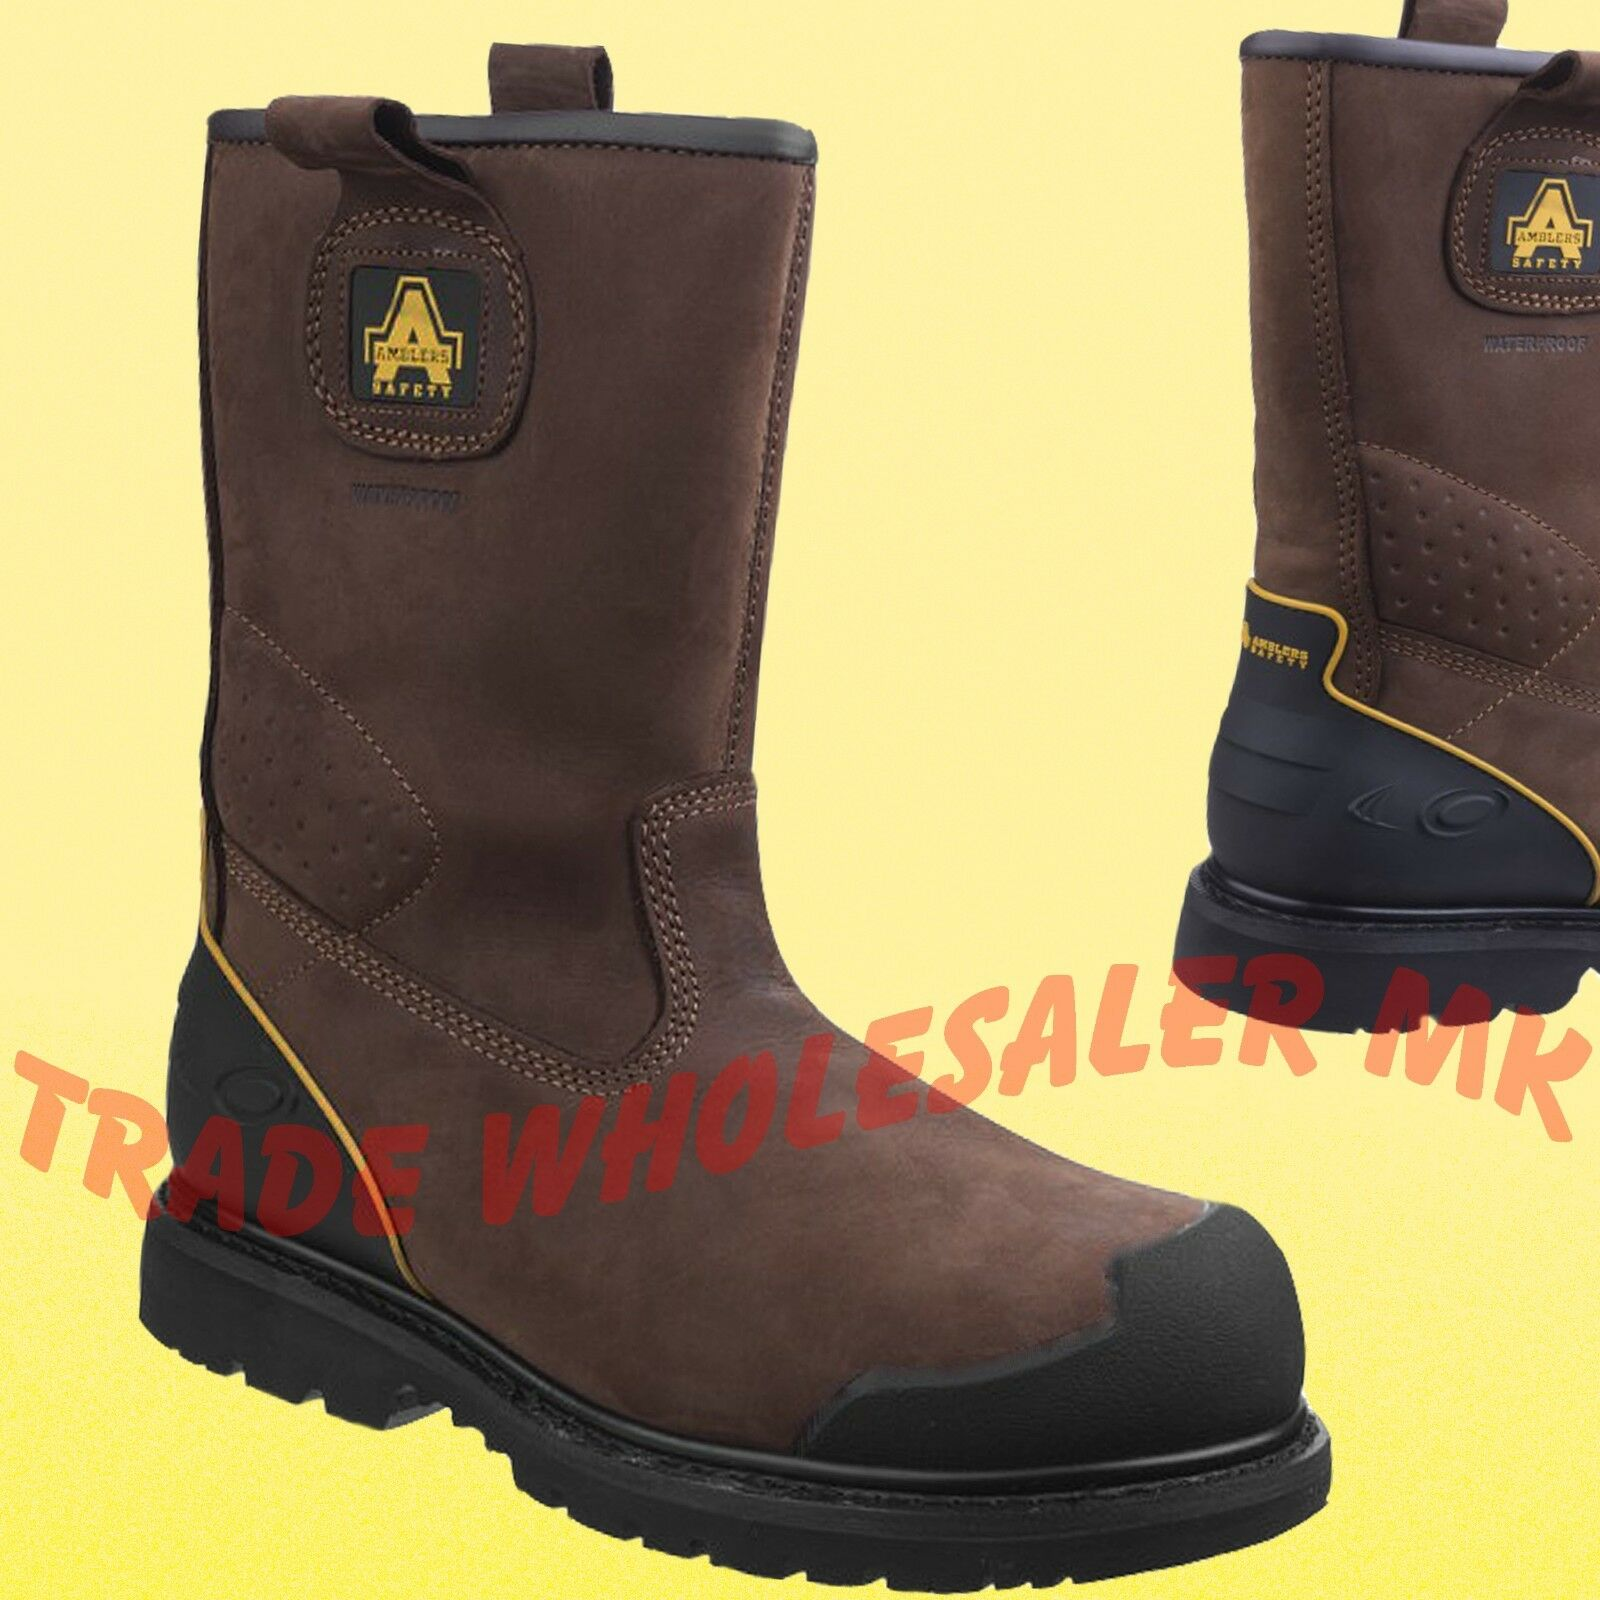 286aaca3437 Amblers Safety Rigger Boots- New Advanced Build Year Round Rigger ...